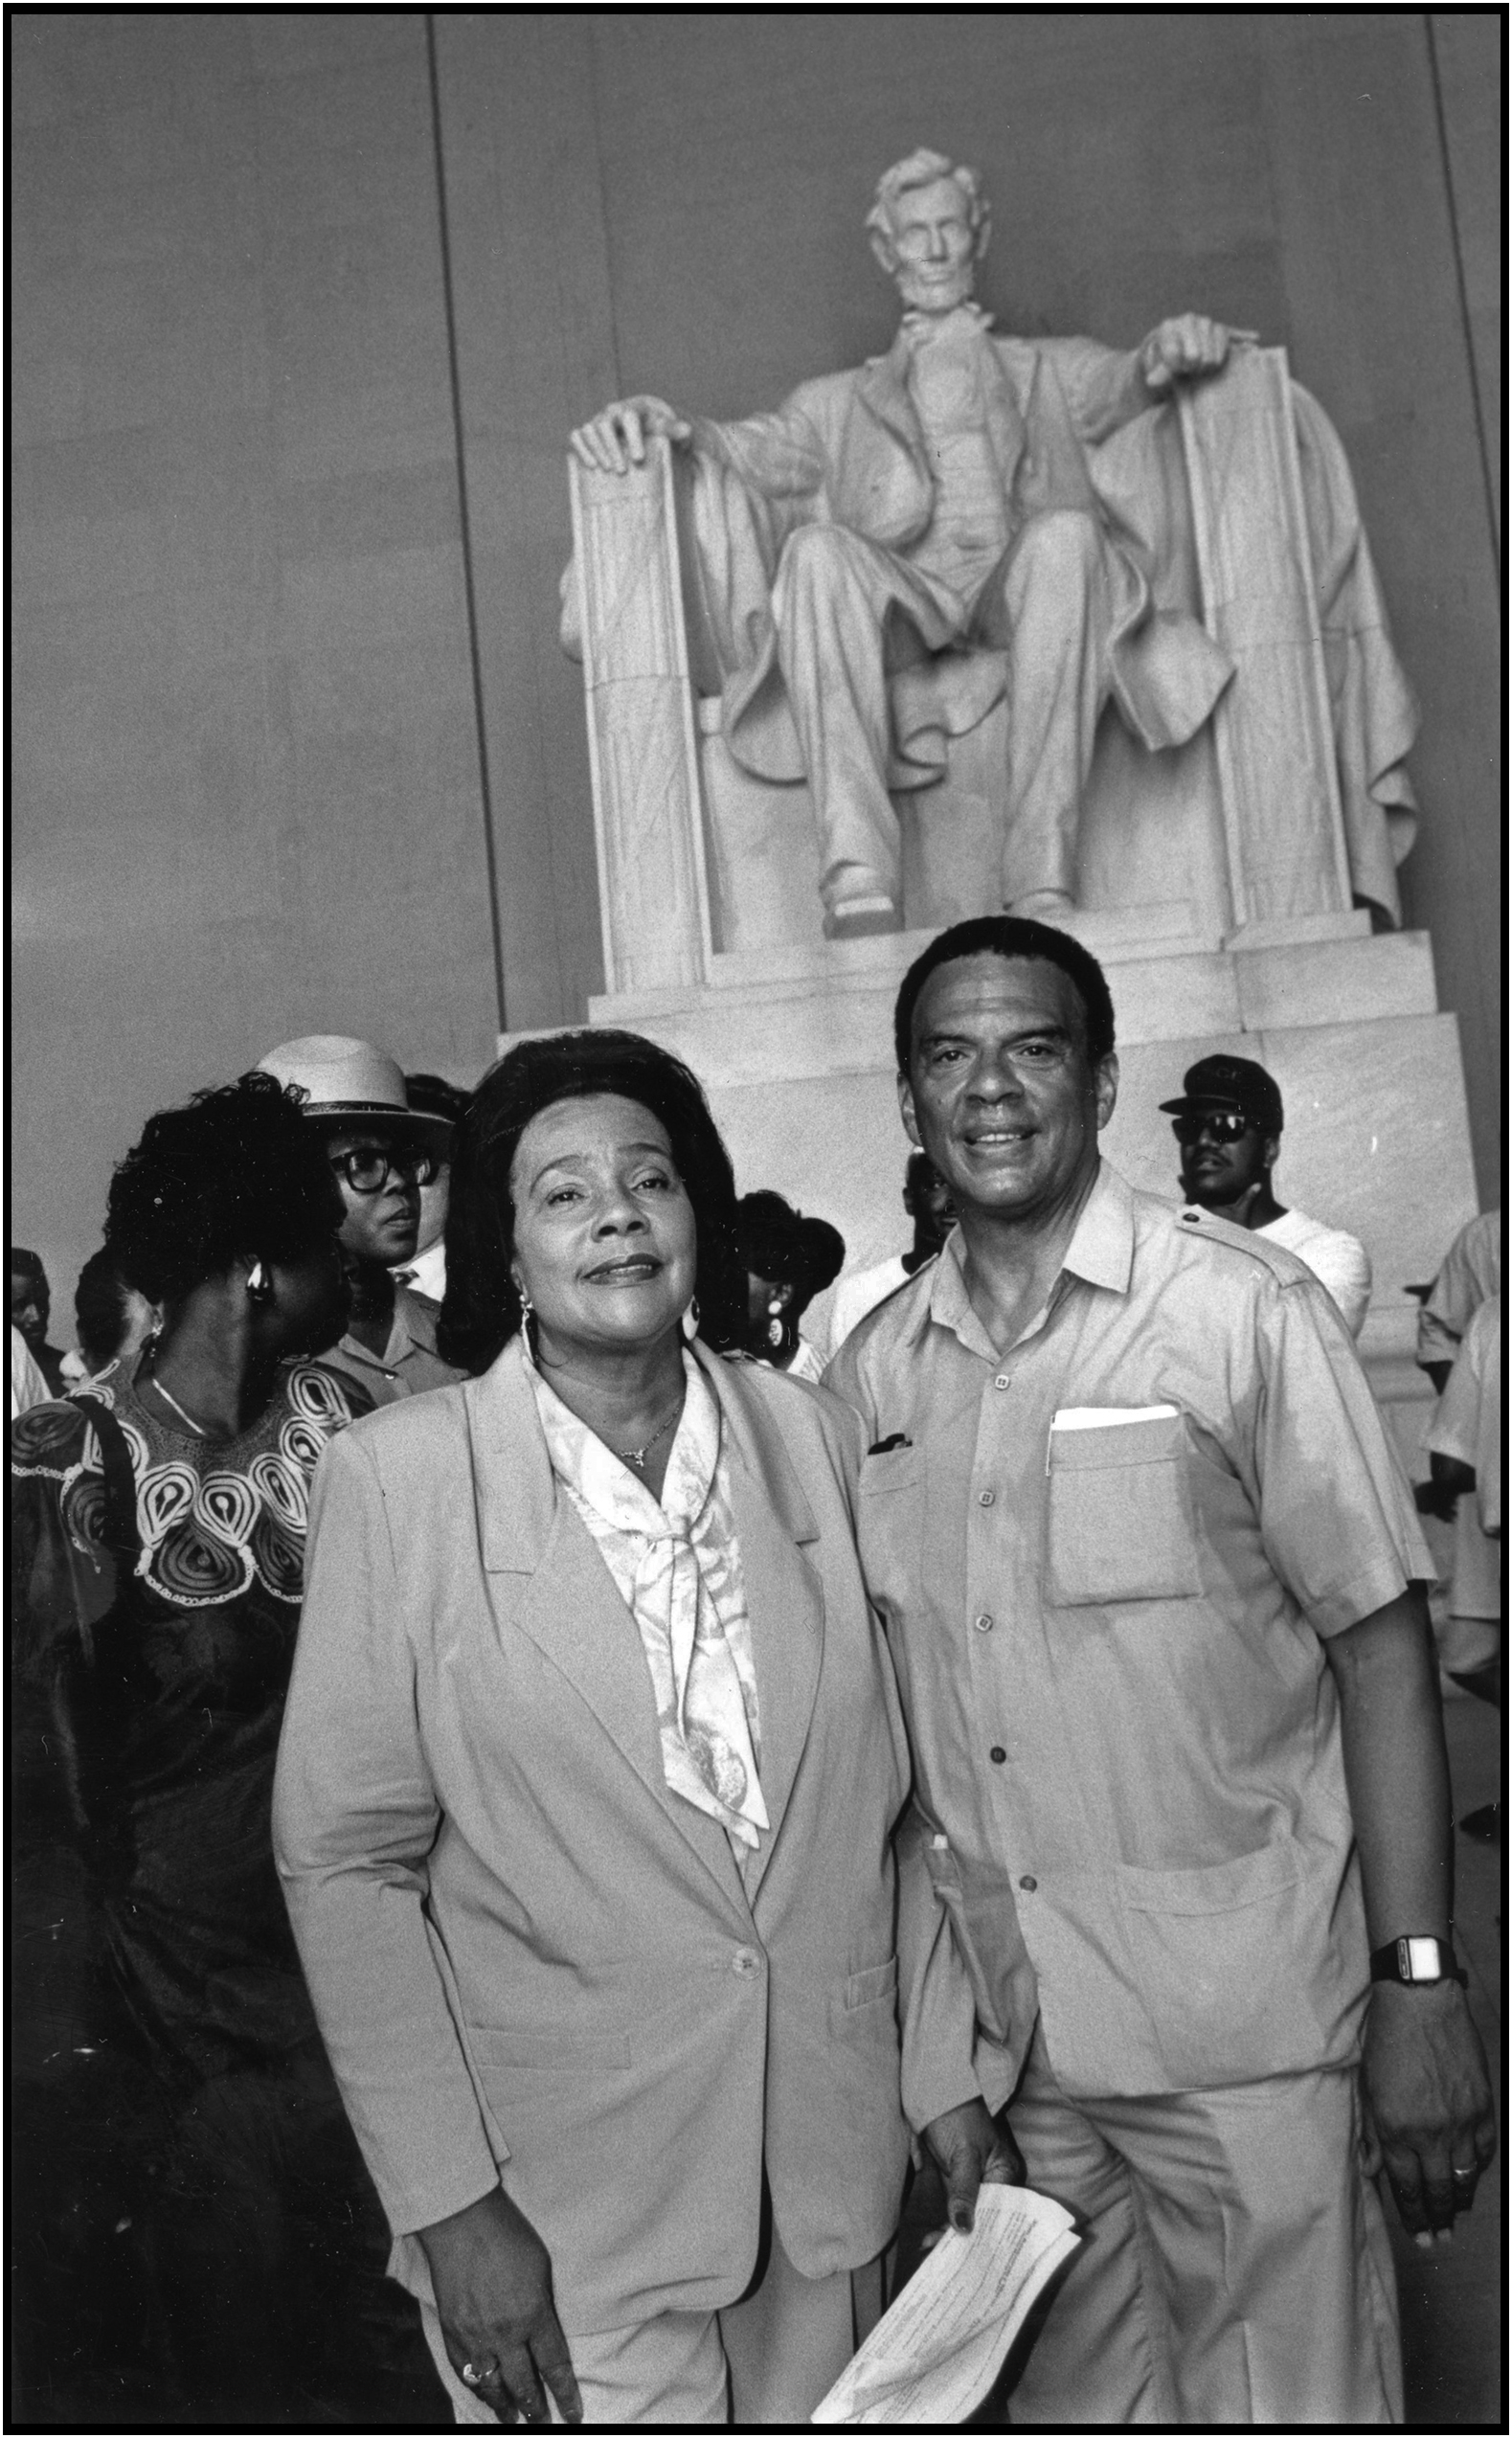 Coretta Scott King and Andrew Young, Wash., D.C., August 23, 1993.